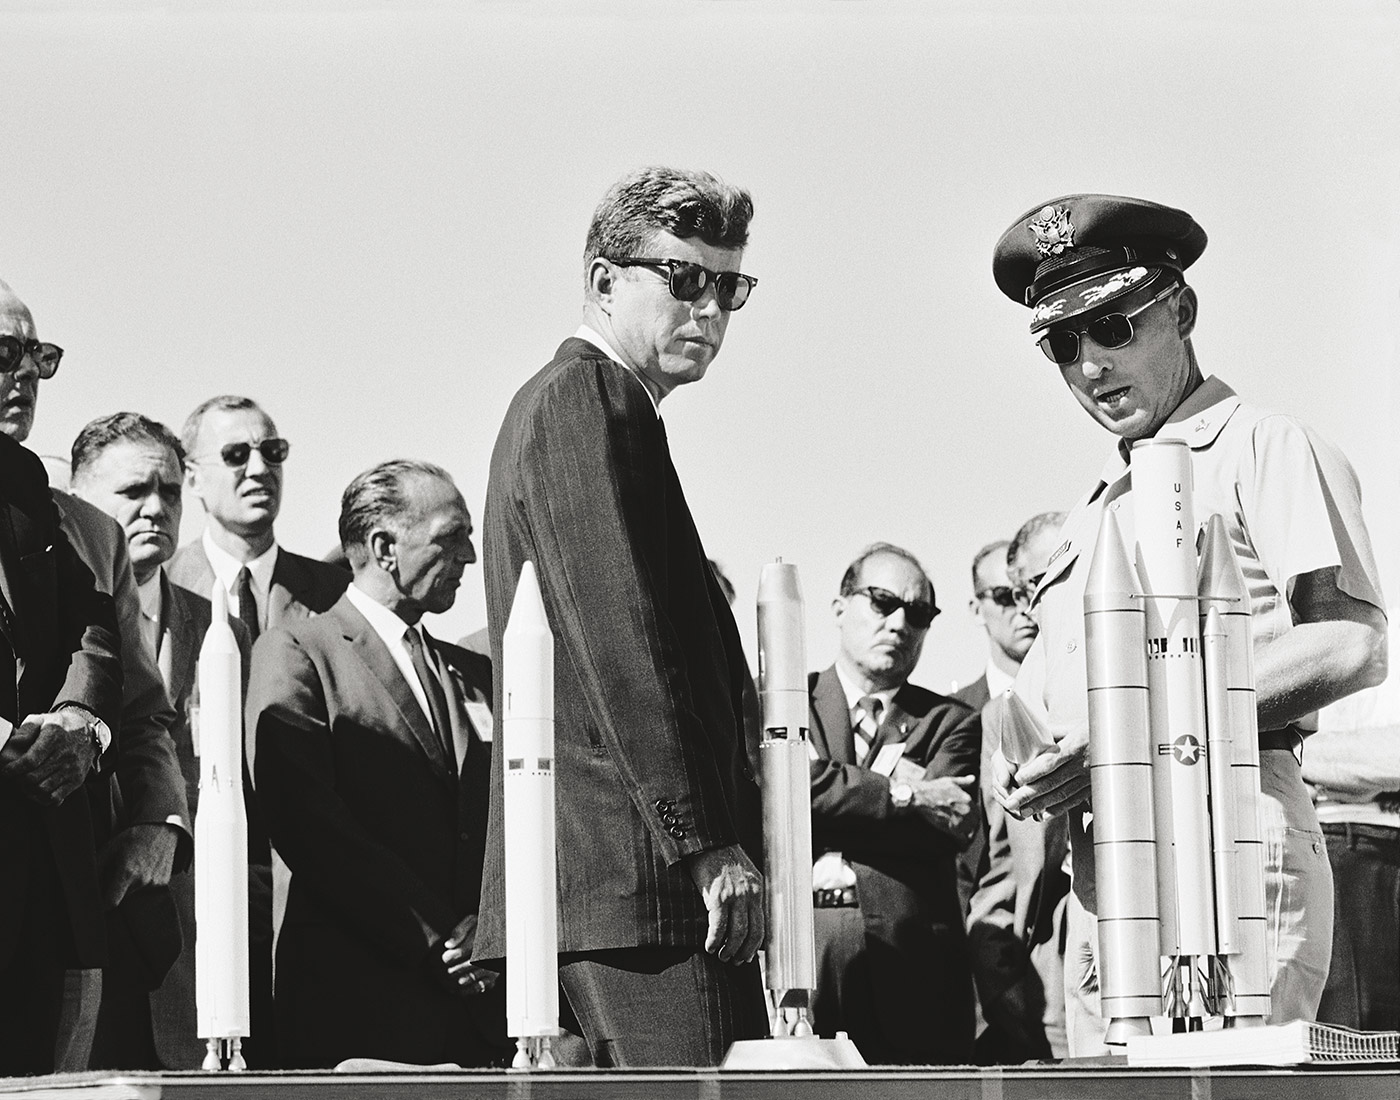 President Kennedy tours NASA facilities in Huntsville, Alabama, September 11, 1961. © Bob Gomel (Courtesy The LIFE Images Collection/Getty Images)